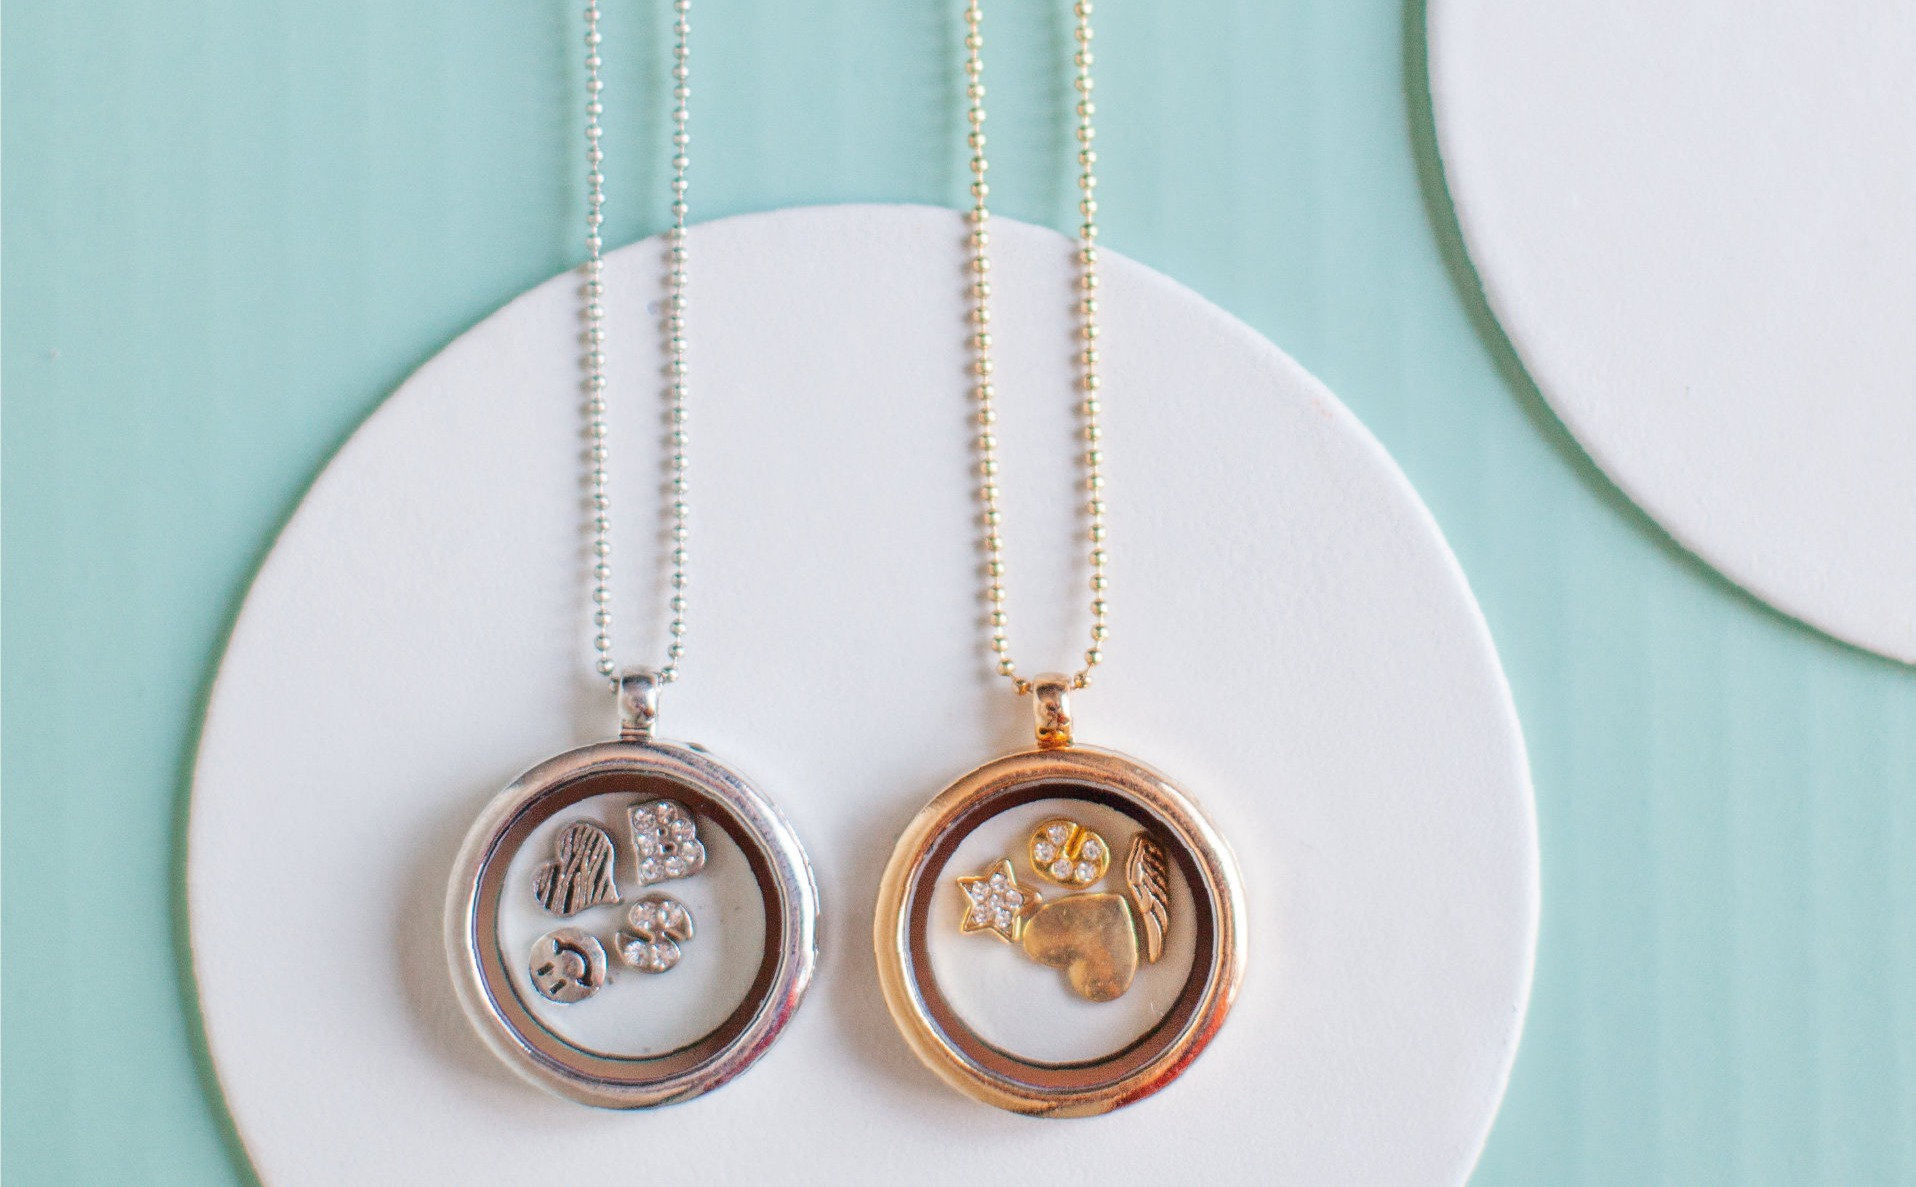 Personalised Round Locket in gold or silver